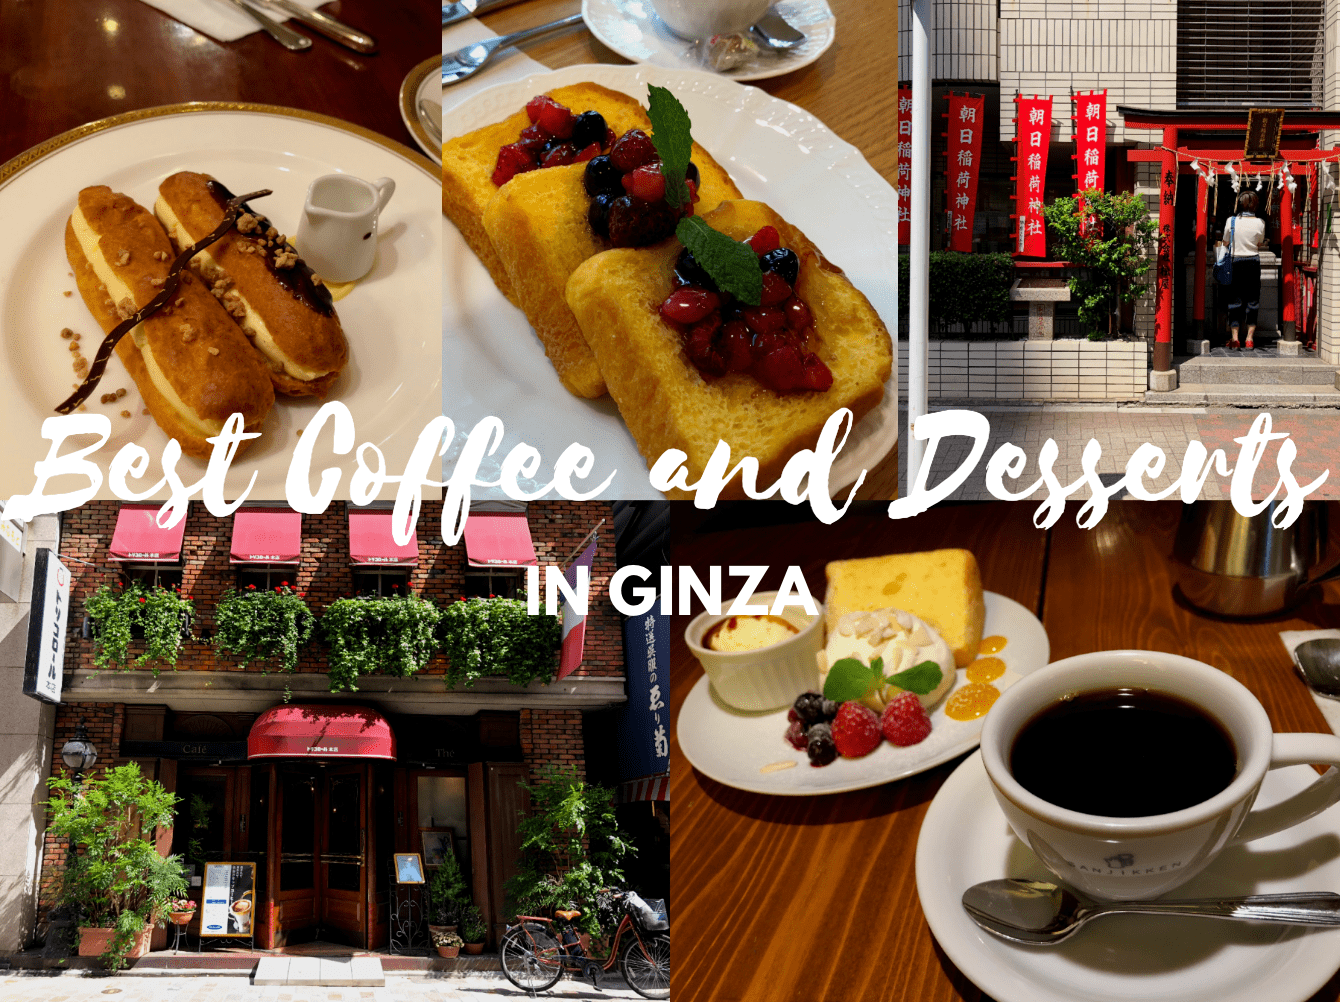 Best Cafes in Ginza, Tokyo